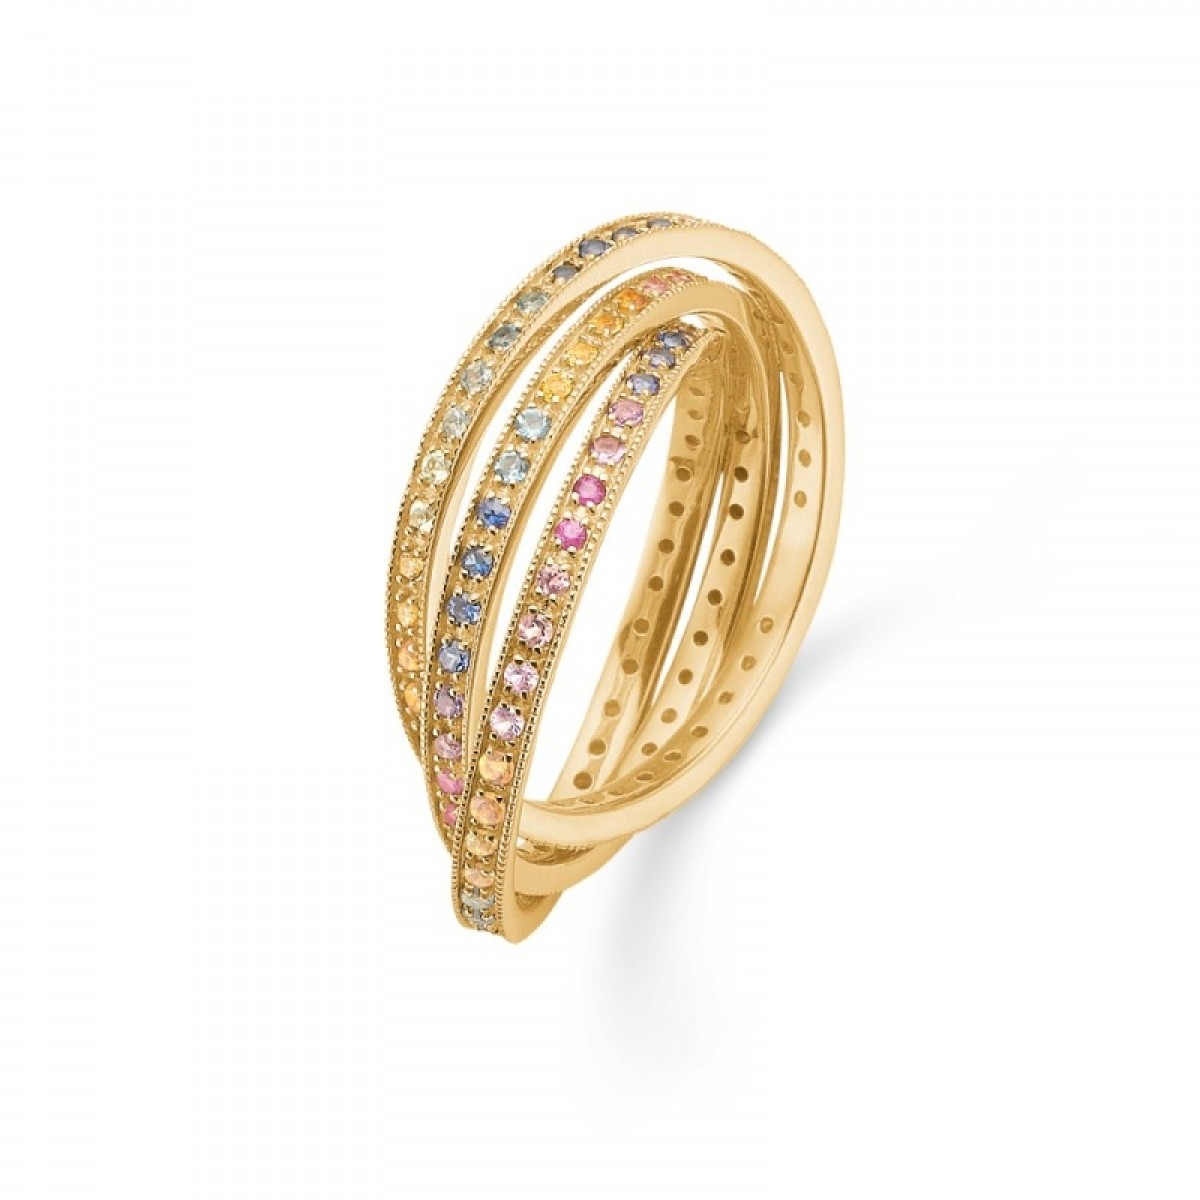 Mads Z POETRY Rainbow luxury ring i 14 kt guld - 1544068